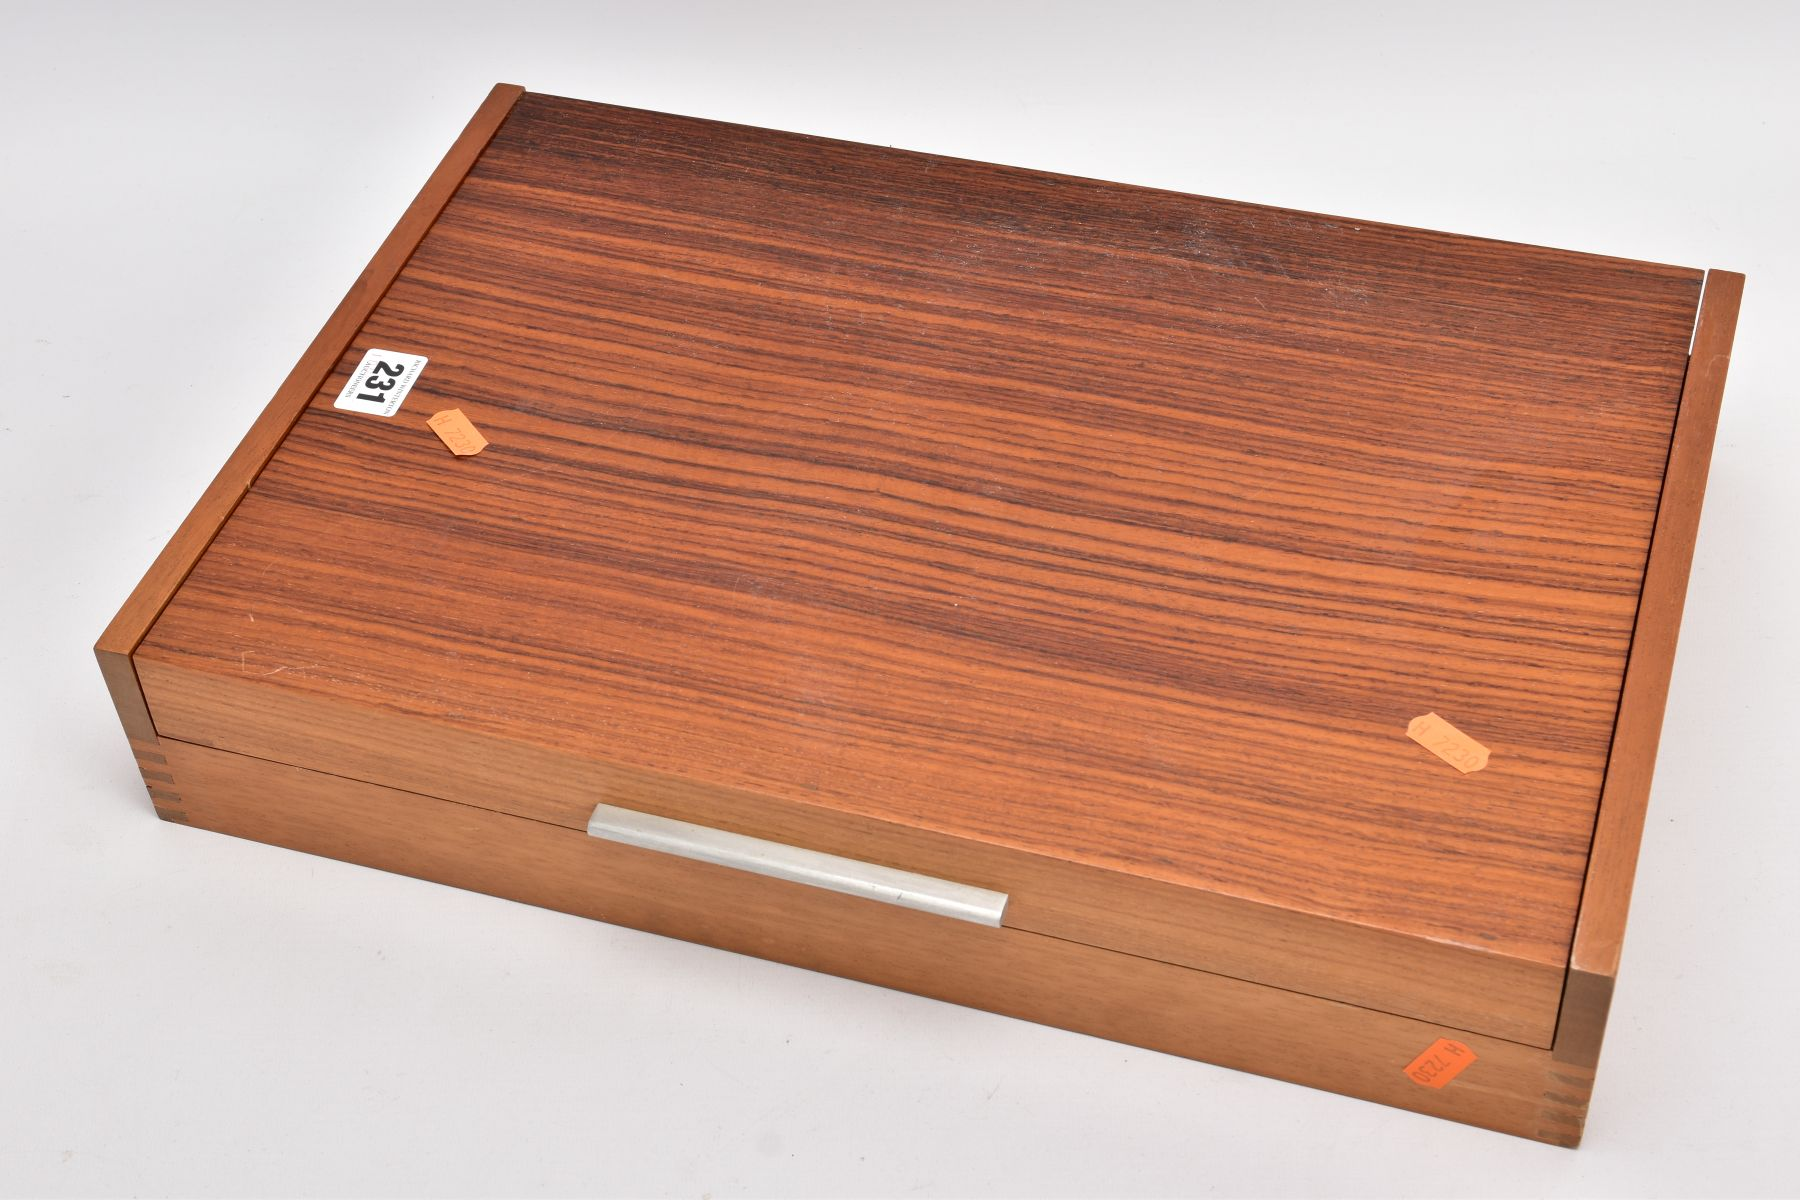 A COMPLETE WOODEN CANTEEN OF COMMUNITY PLATE CUTLERY, eighty five piece set to include knives, - Image 6 of 6